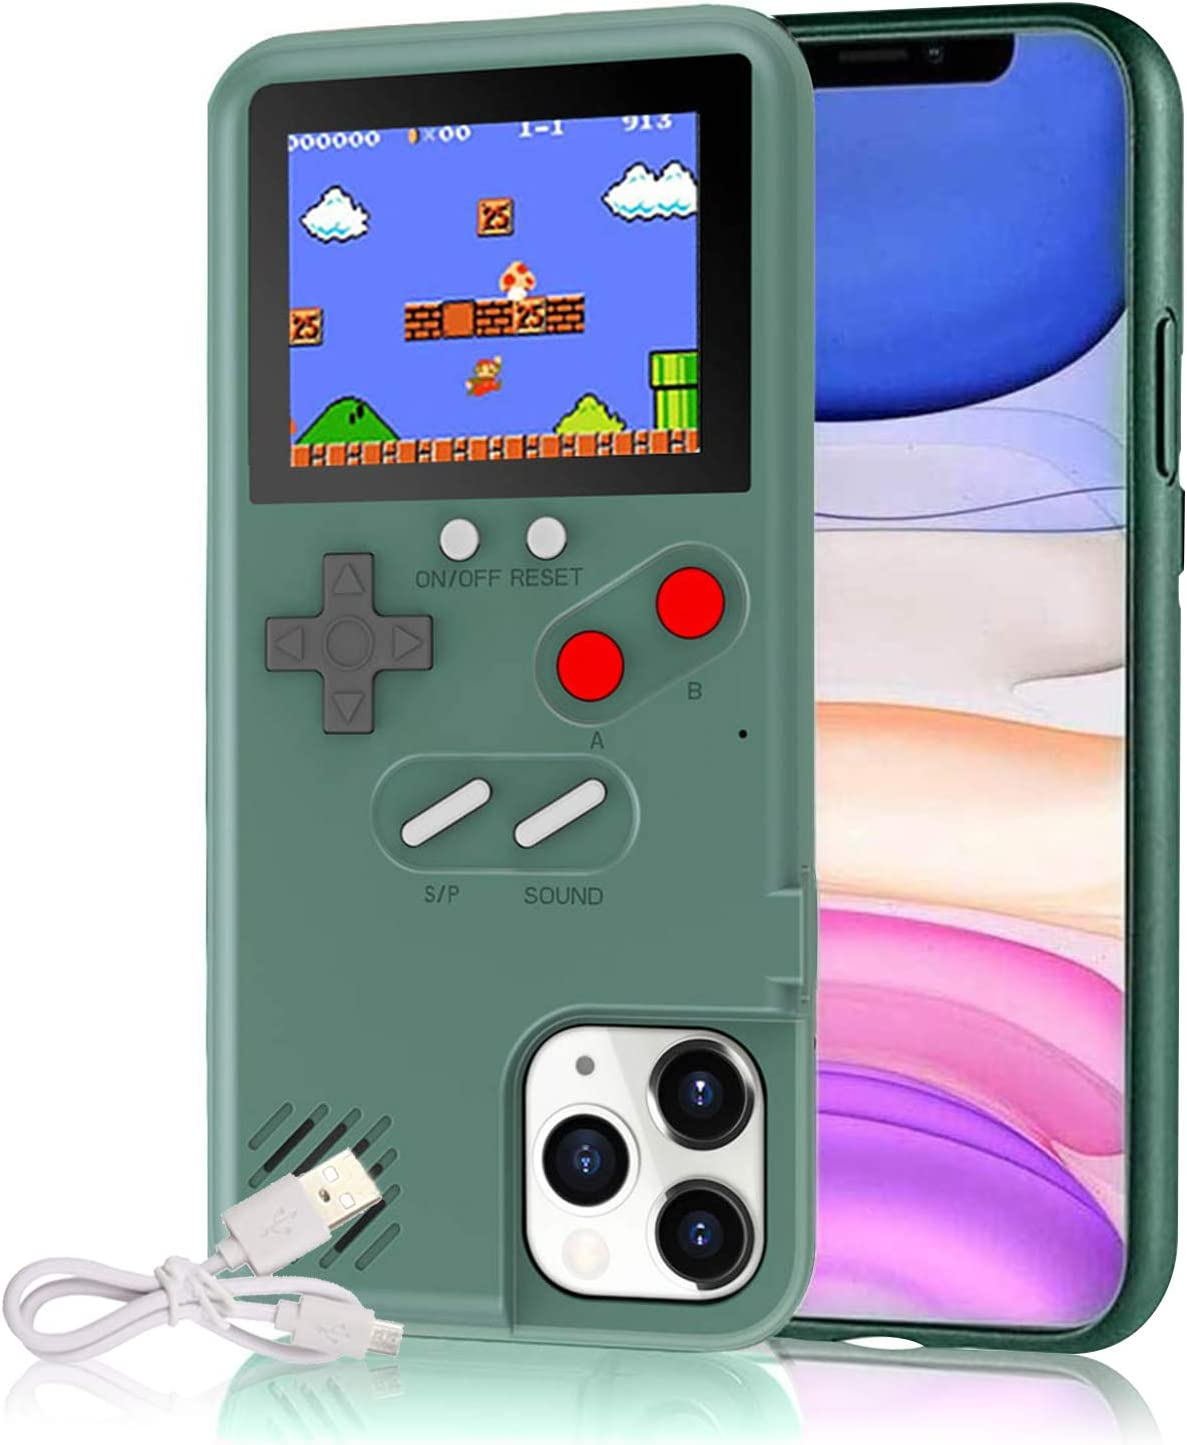 Gameboy Case for iPhone, Autbye Retro 3D Phone Case Game Console with 36 Classic Game, Color Display Shockproof Video Game Phone Case for iPhone (for ...